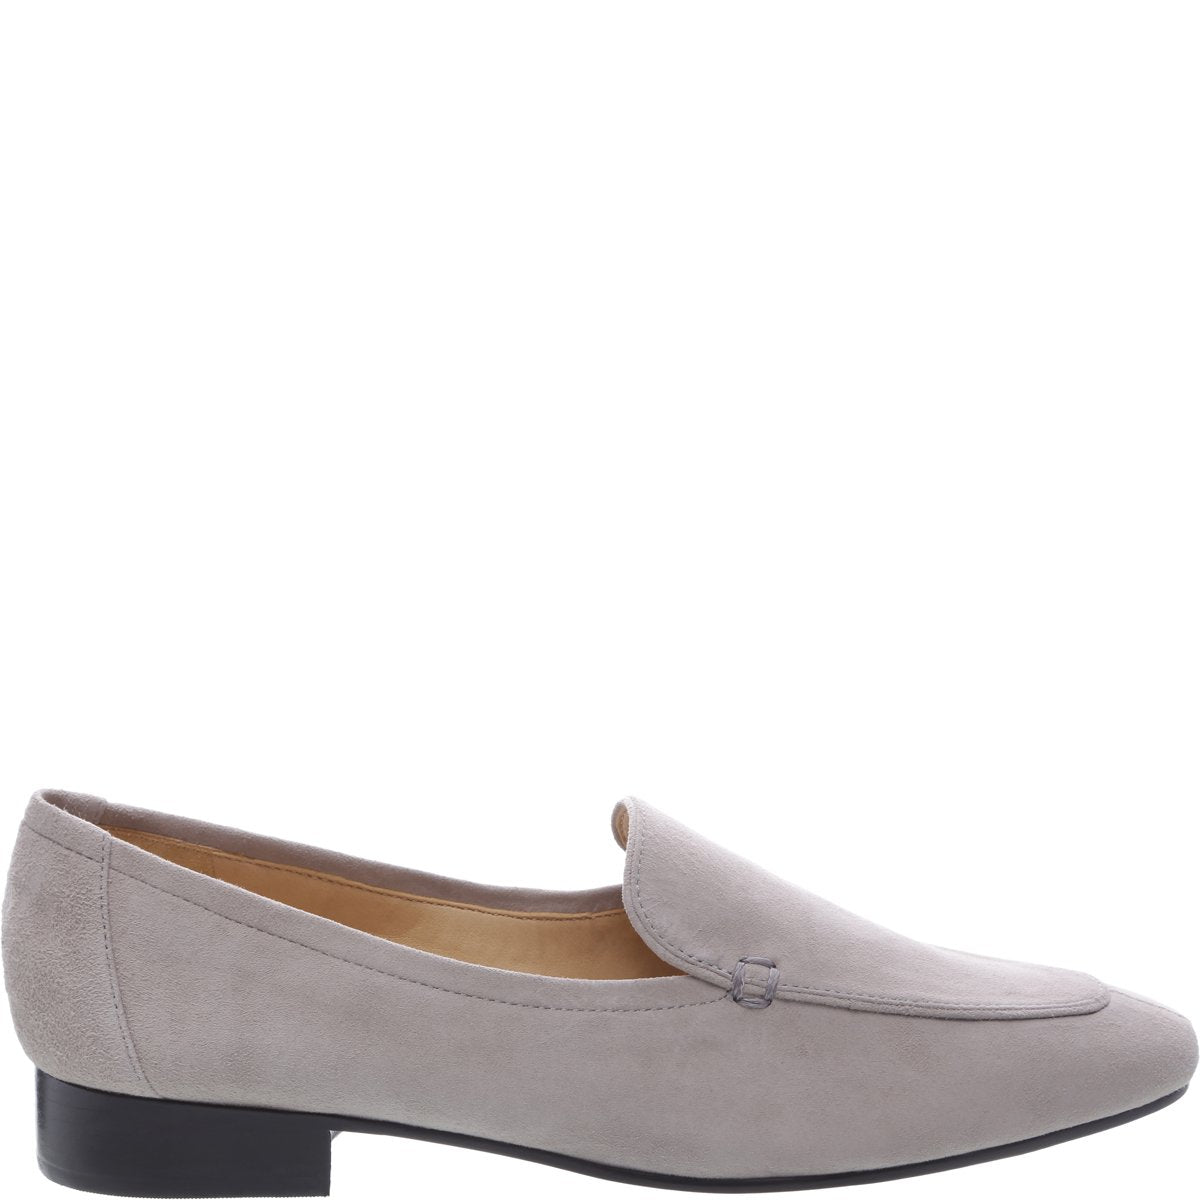 Shania Loafer Flat - Mouse Grey Suede